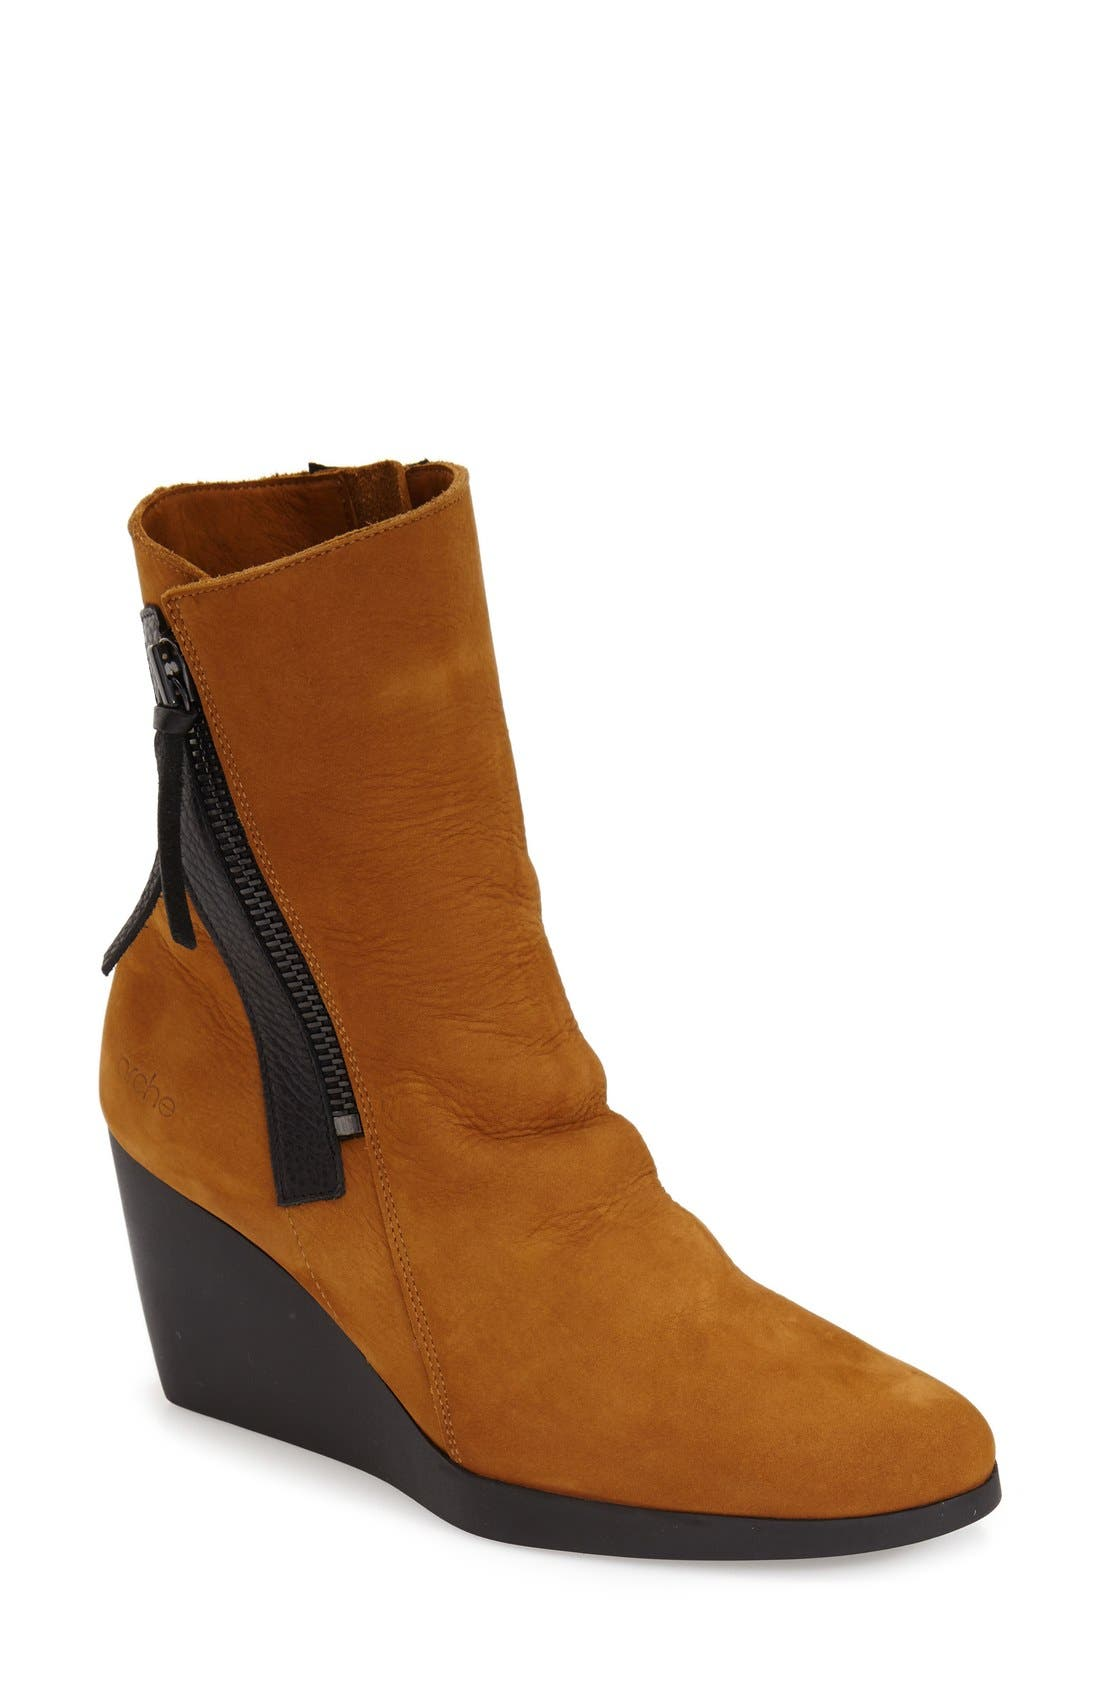 ARCHE 'Vitahe' Water Resistant Boot